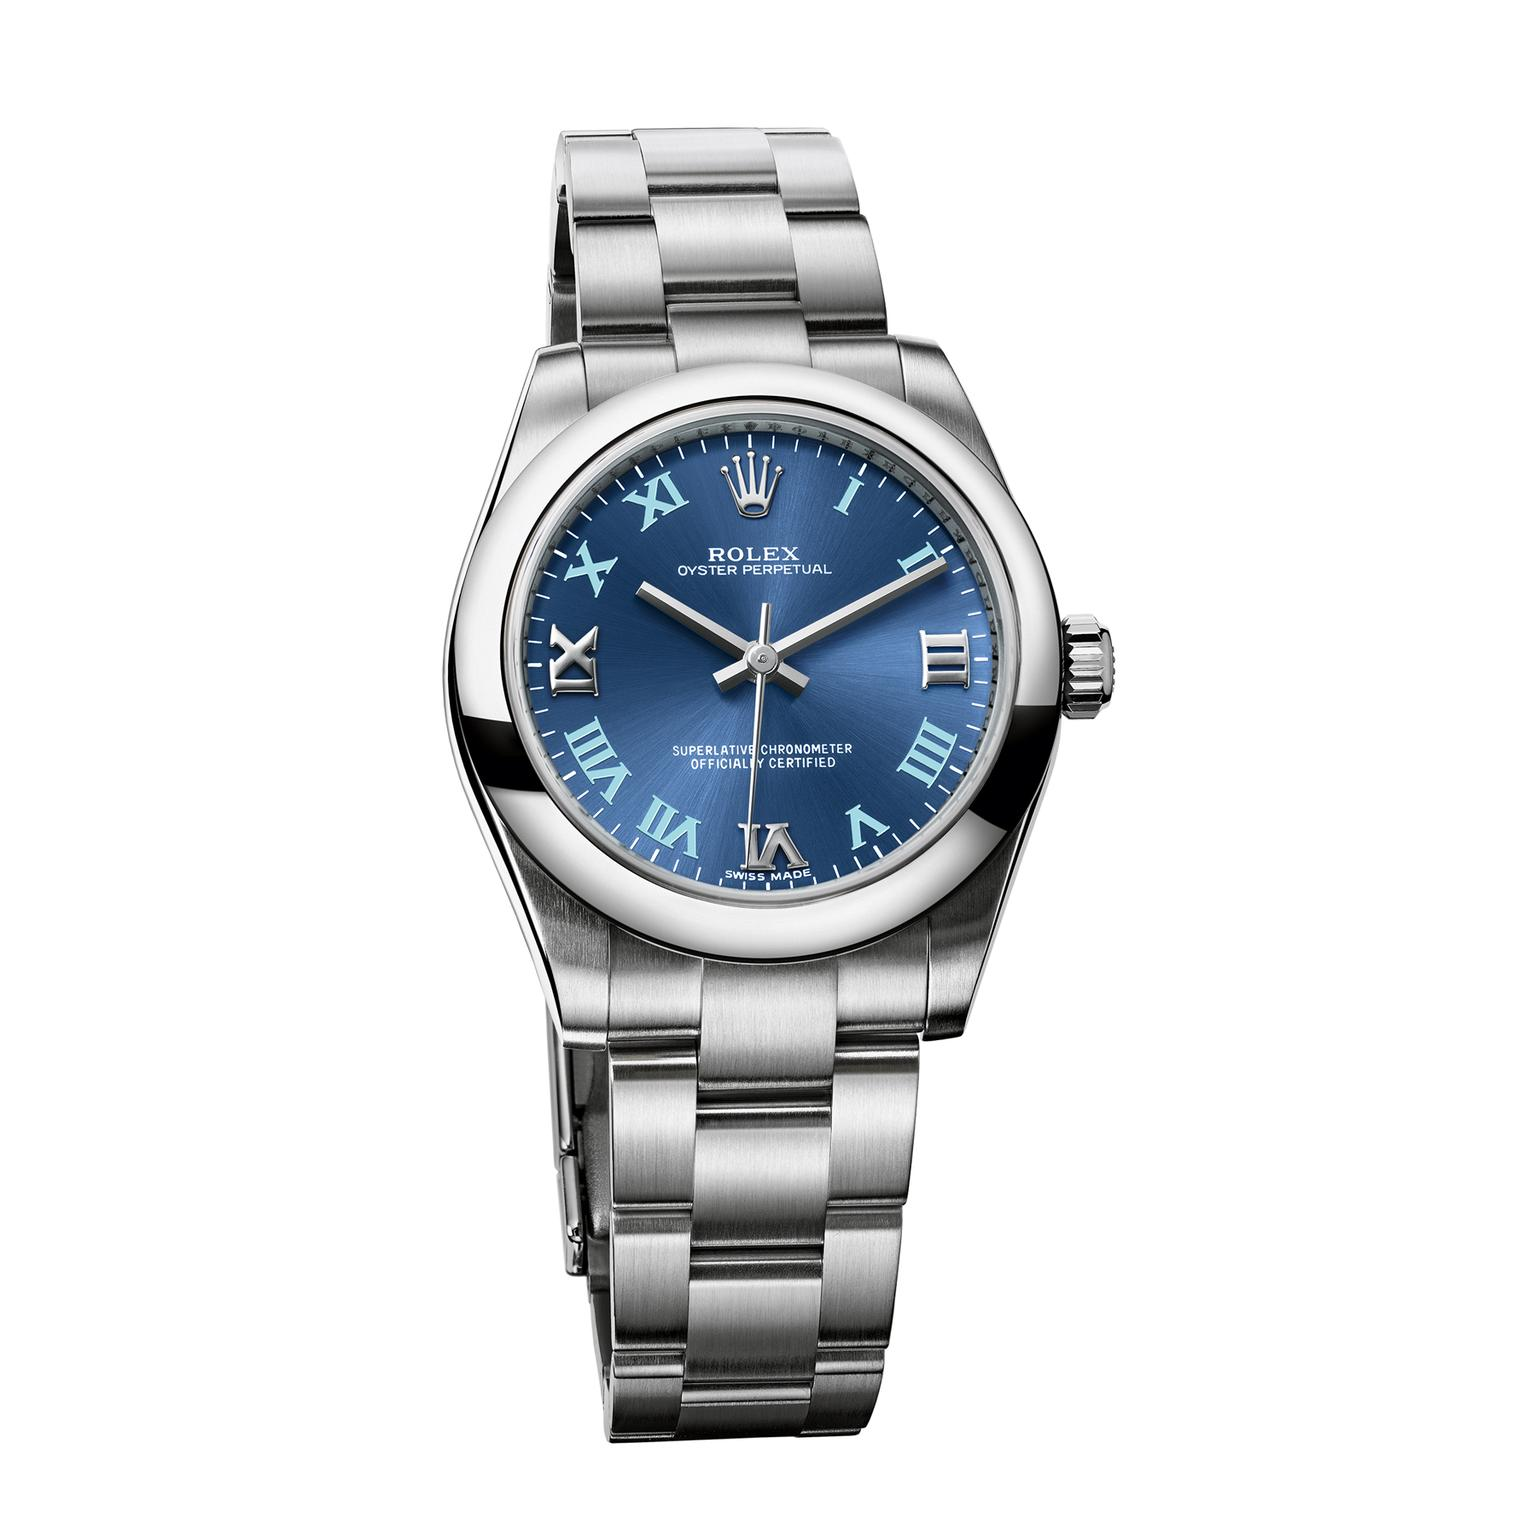 Steel Rolex Oyster Perpetual 31mm 904l Watch In Steel